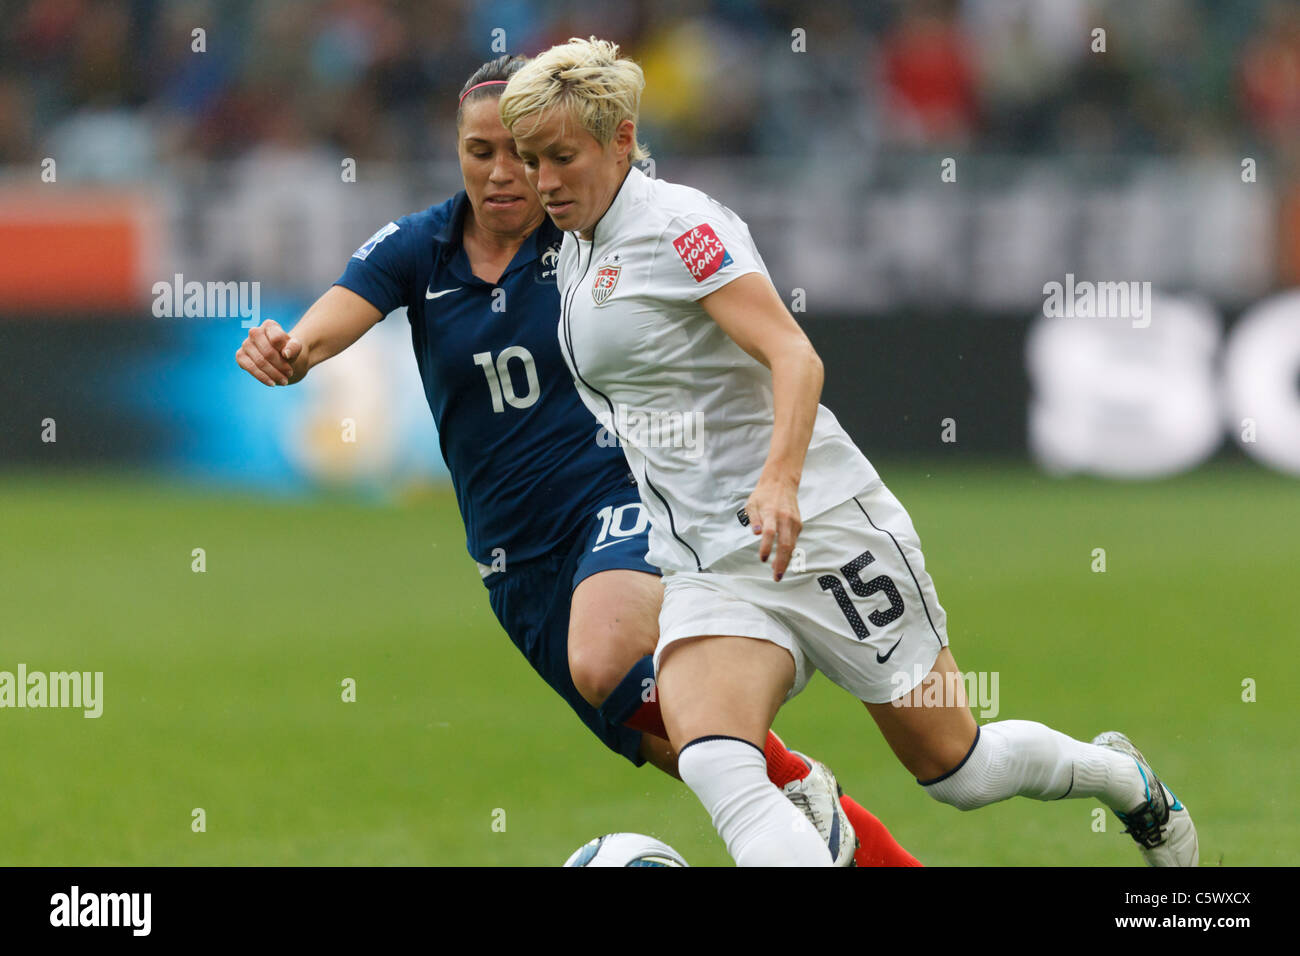 Megan Rapinoe of the United States (15) in action against Camille Abily of France (10) during a 2011 Women's - Stock Image